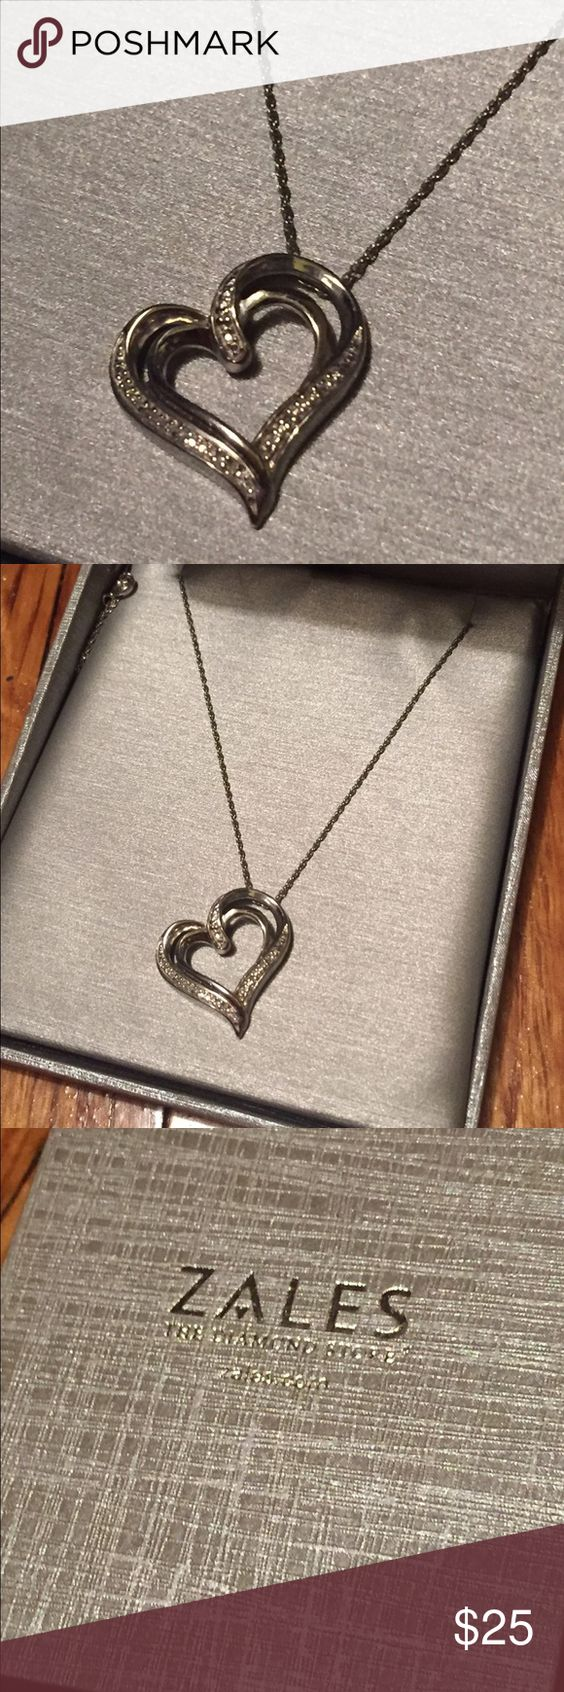 Like new zales diamond accent heart pendant